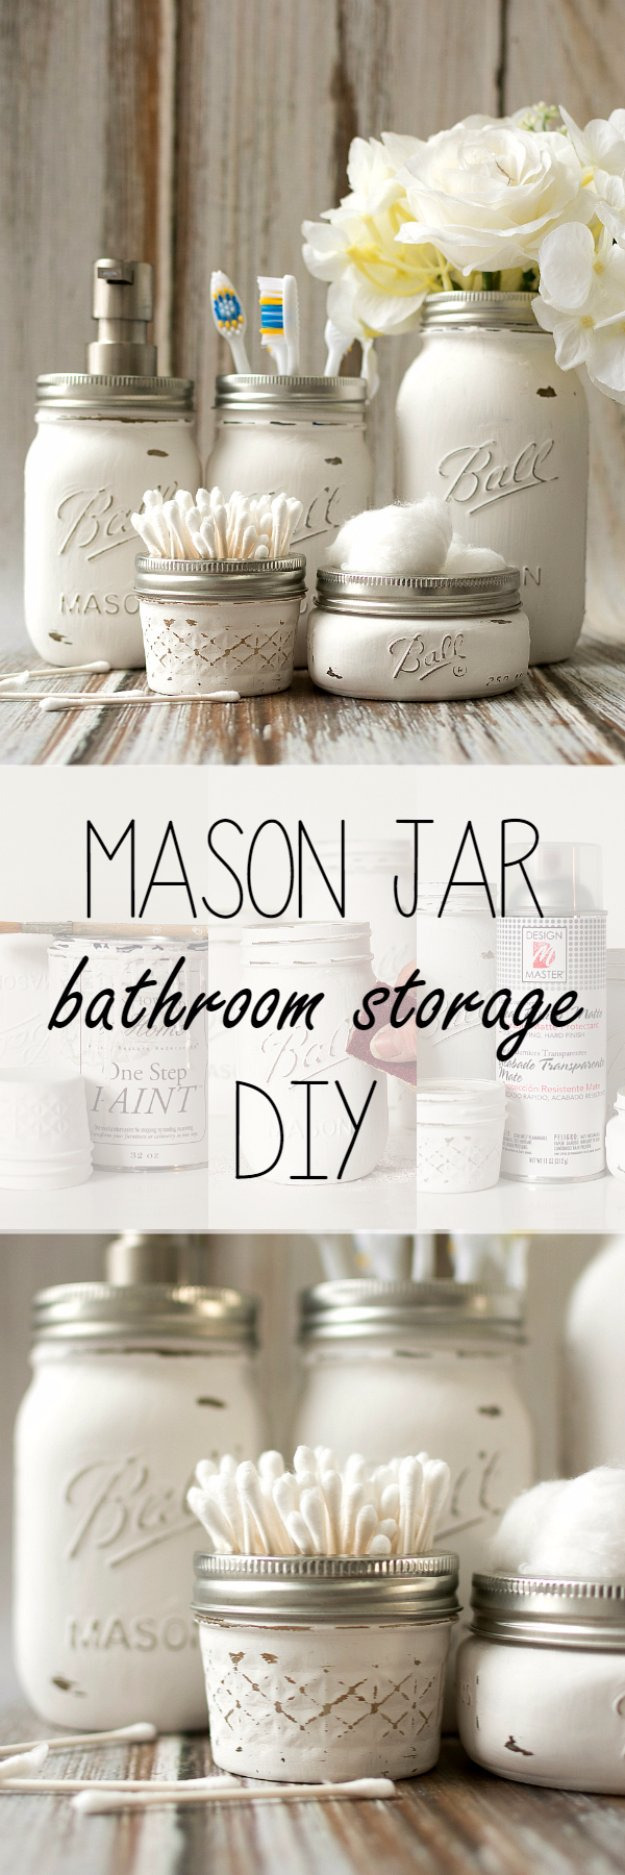 Accessories for Bathroom Decoration Lovely 15 Pretty Awesome Diy Ideas for Your Bathroom S Decor